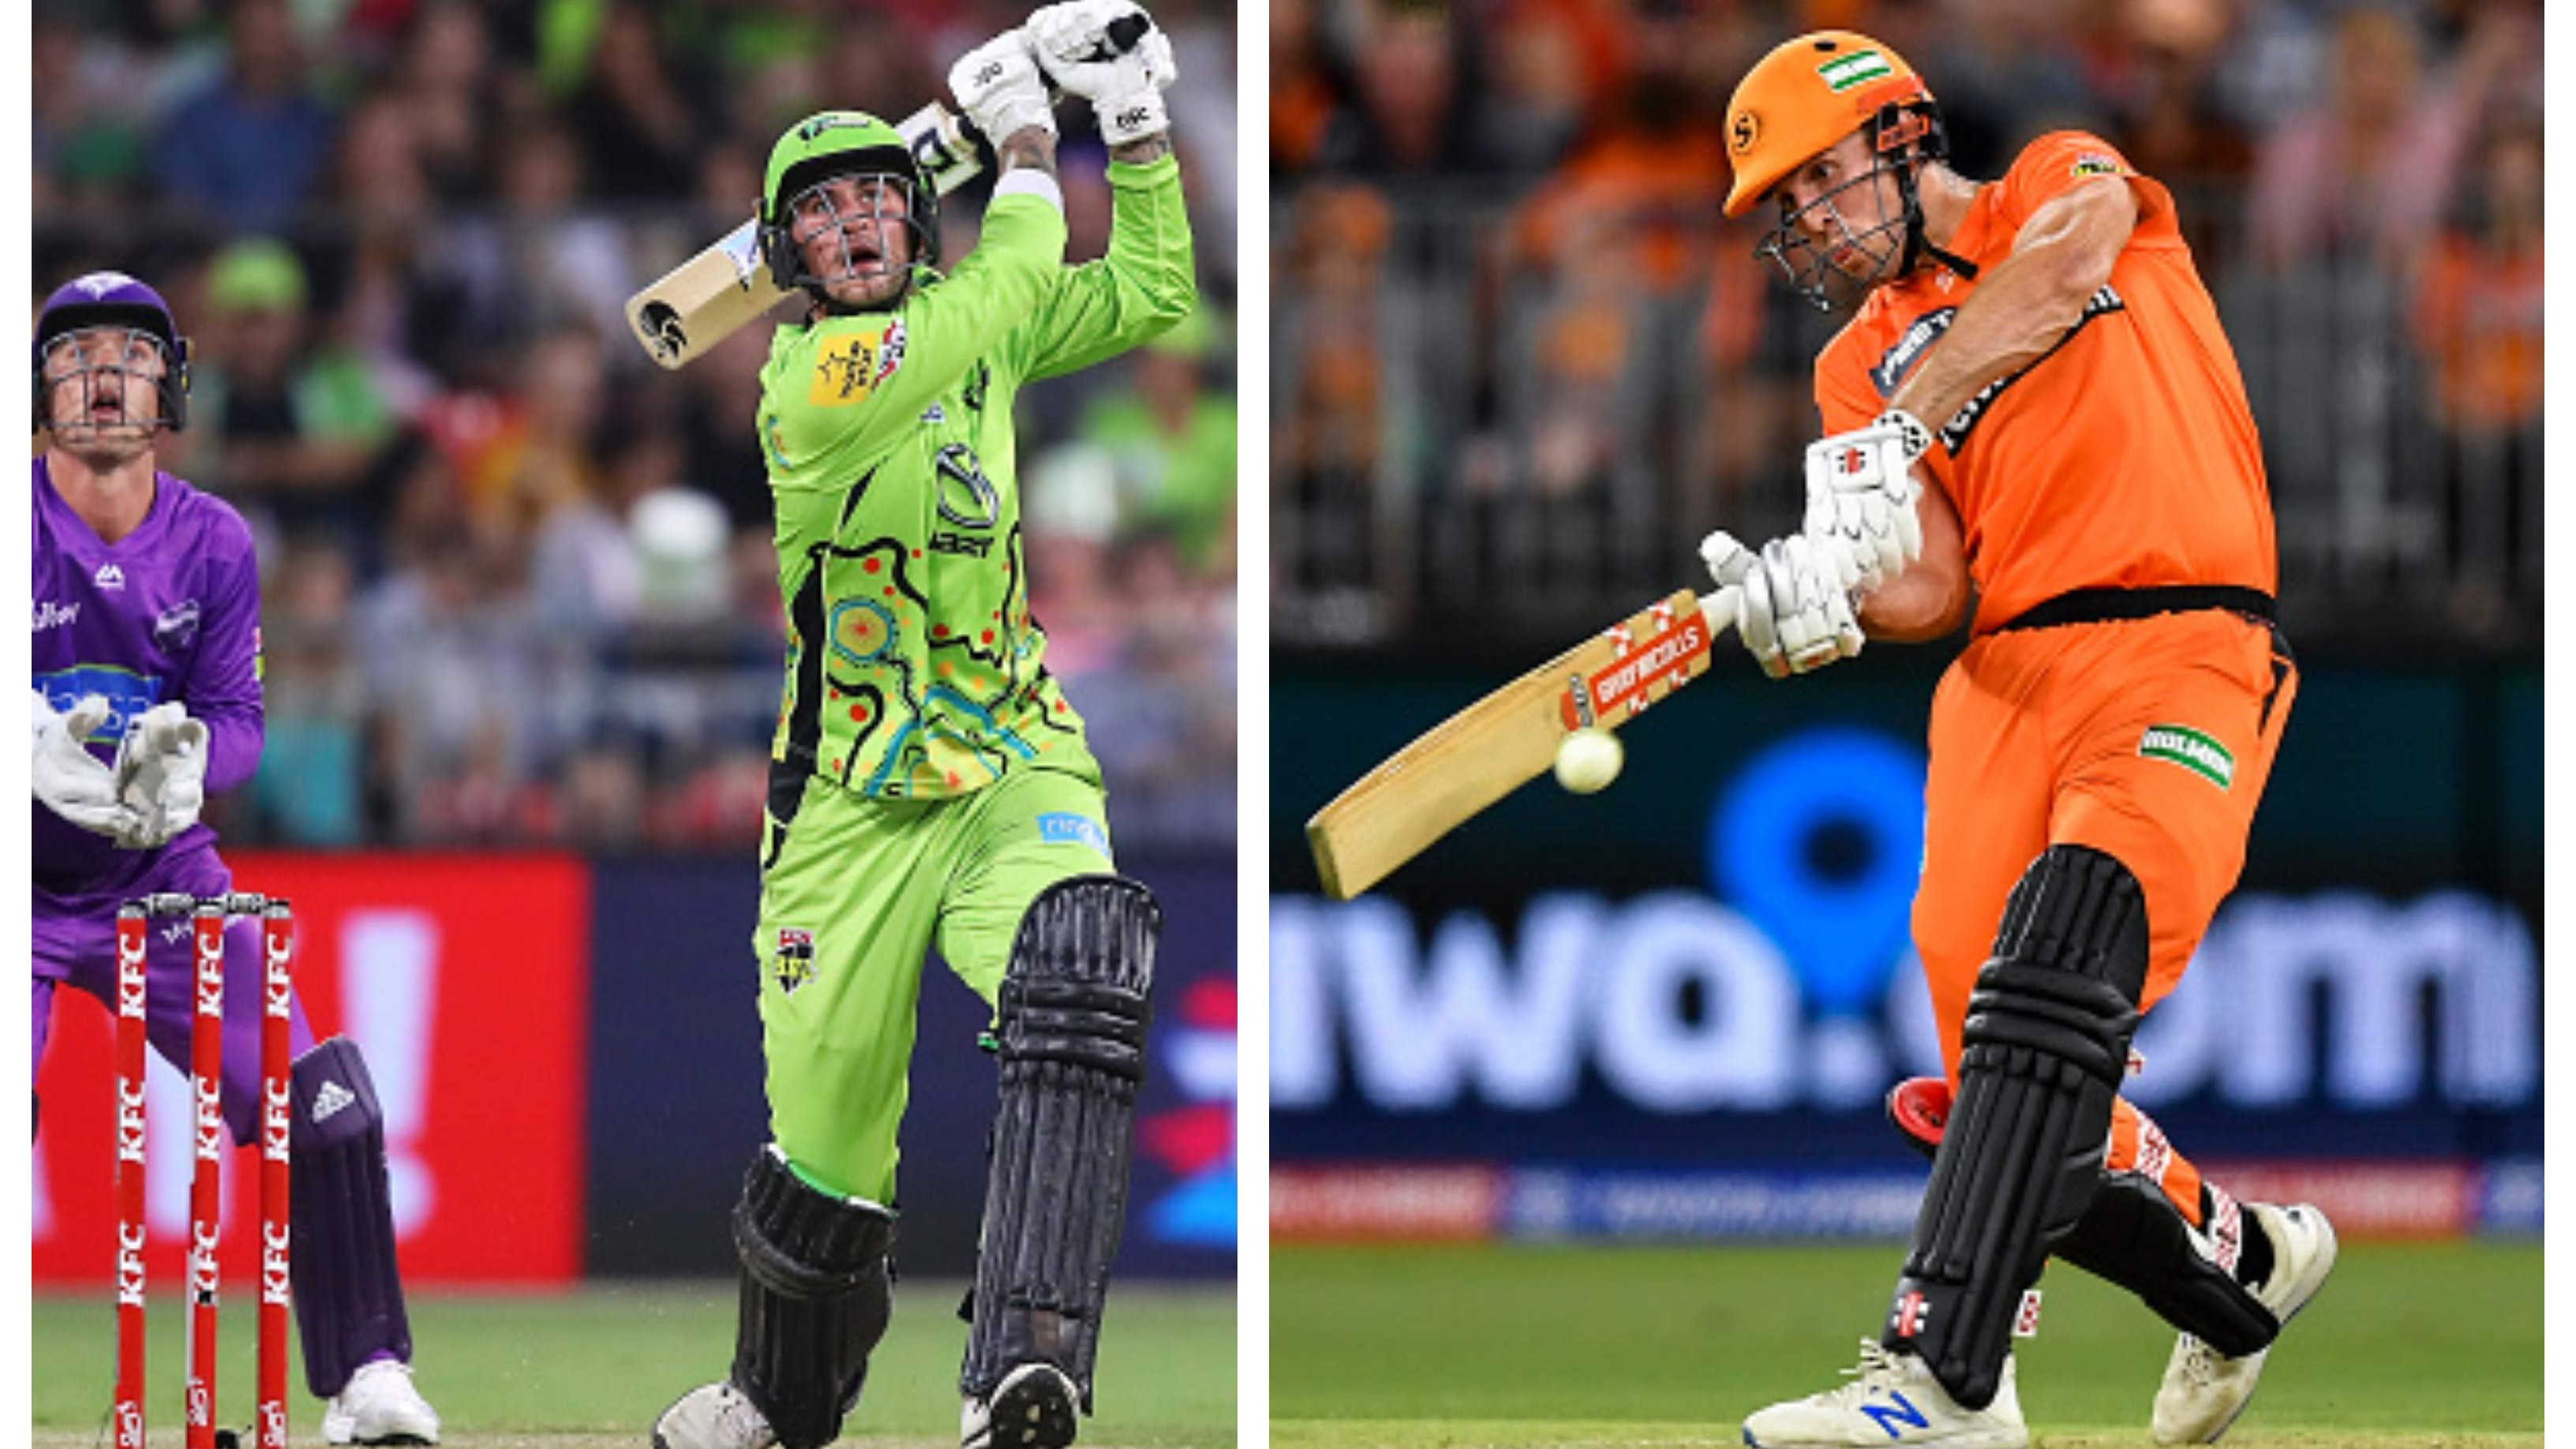 BBL 09: Thunder register a thrilling 4-wicket win over Hurricanes; Scorchers defeat Heat by 34 runs